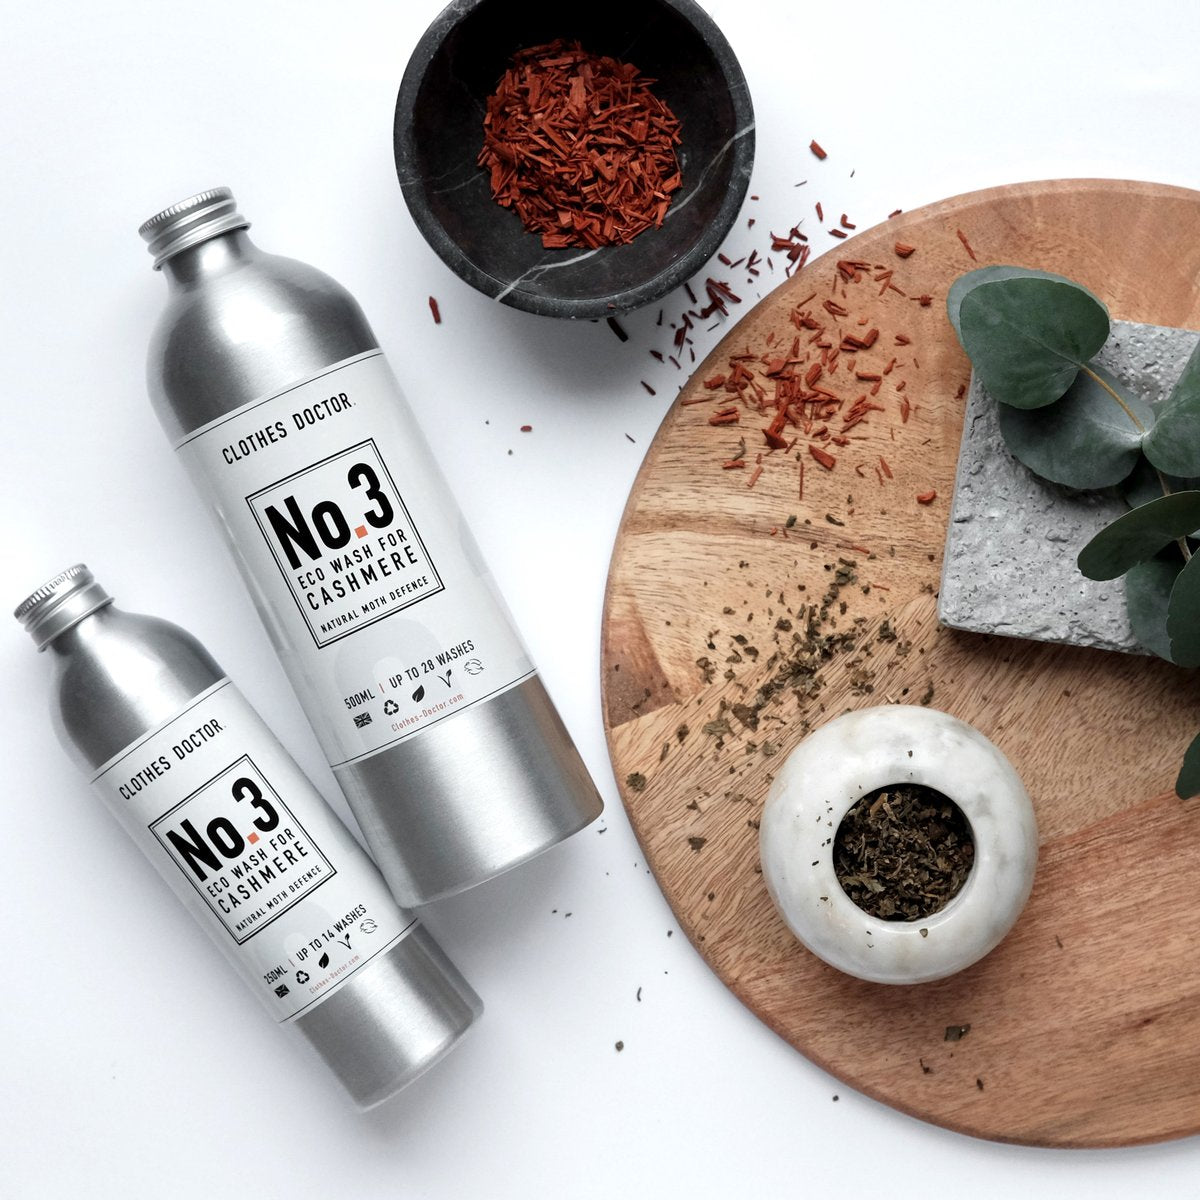 PLASTIC FREE, LUXURY SET OF FOUR ECO WASHES (in 500ml), effective at stain removal, Nourish and protect,  refreshes and renews. - natoorio